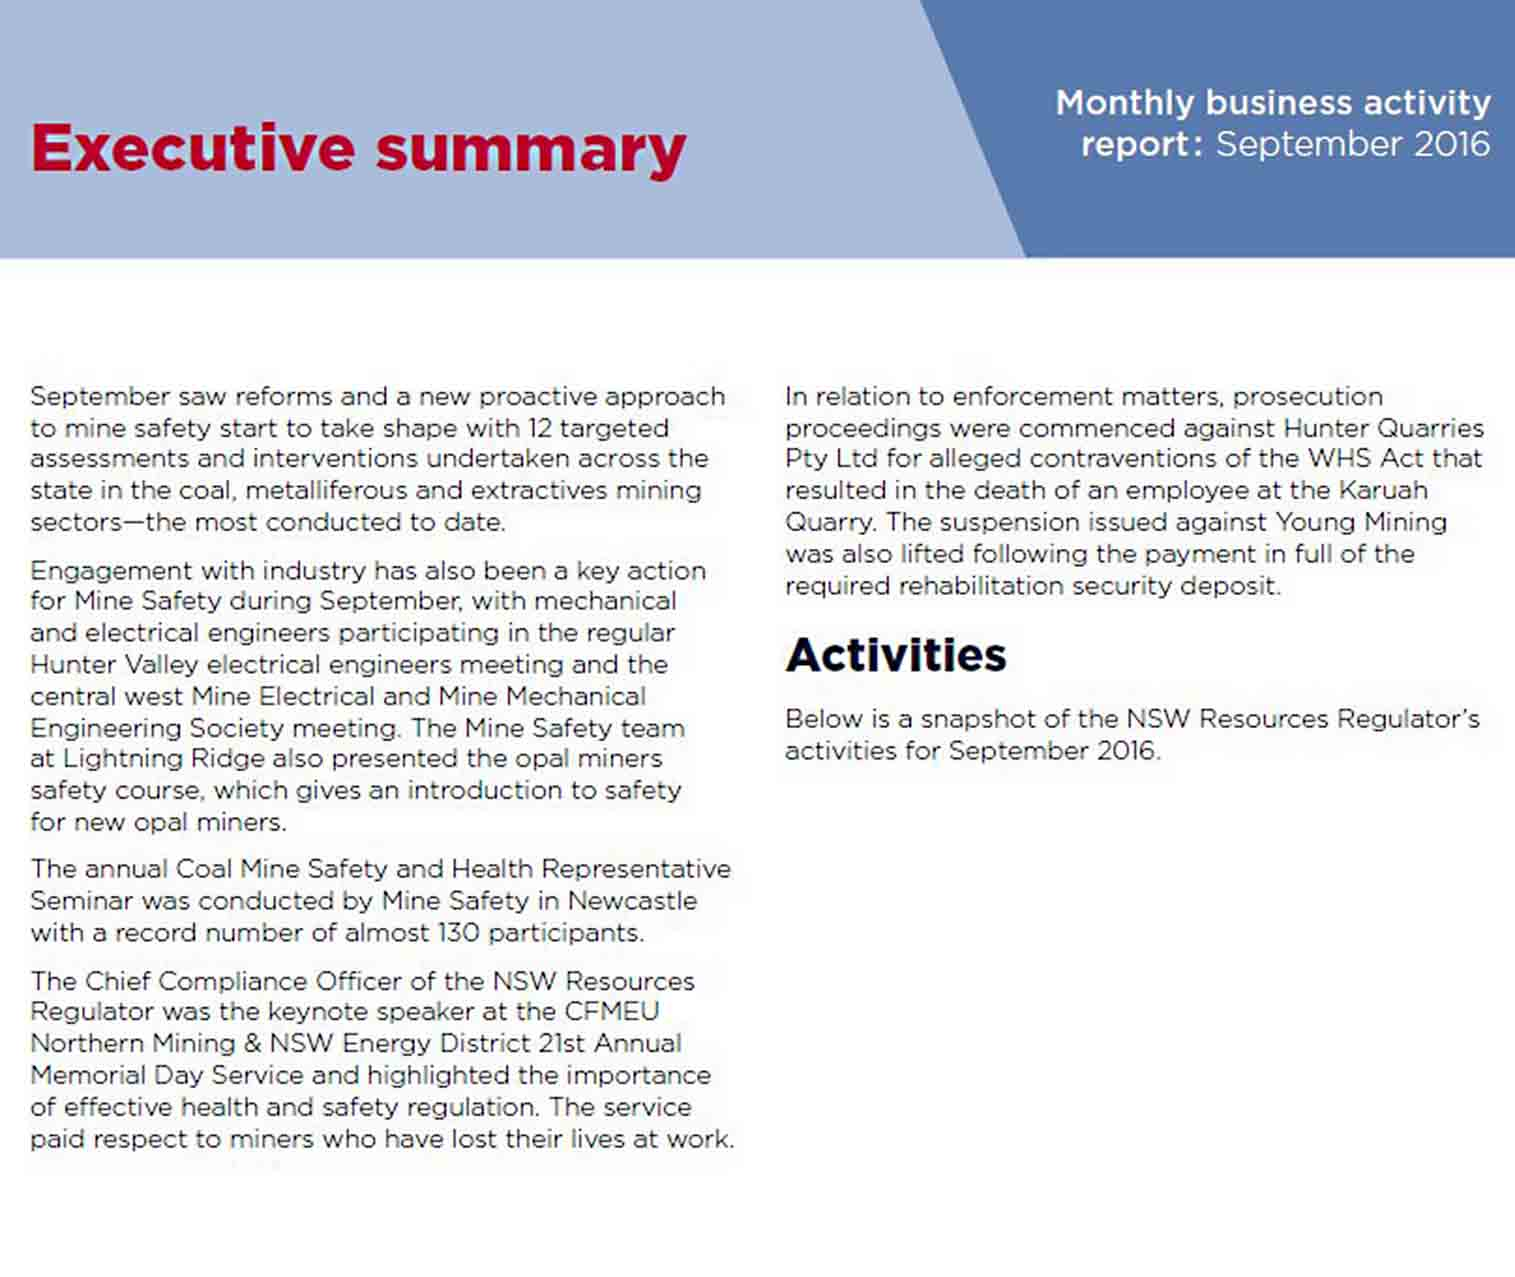 Monthly Business Activity Report Template sample